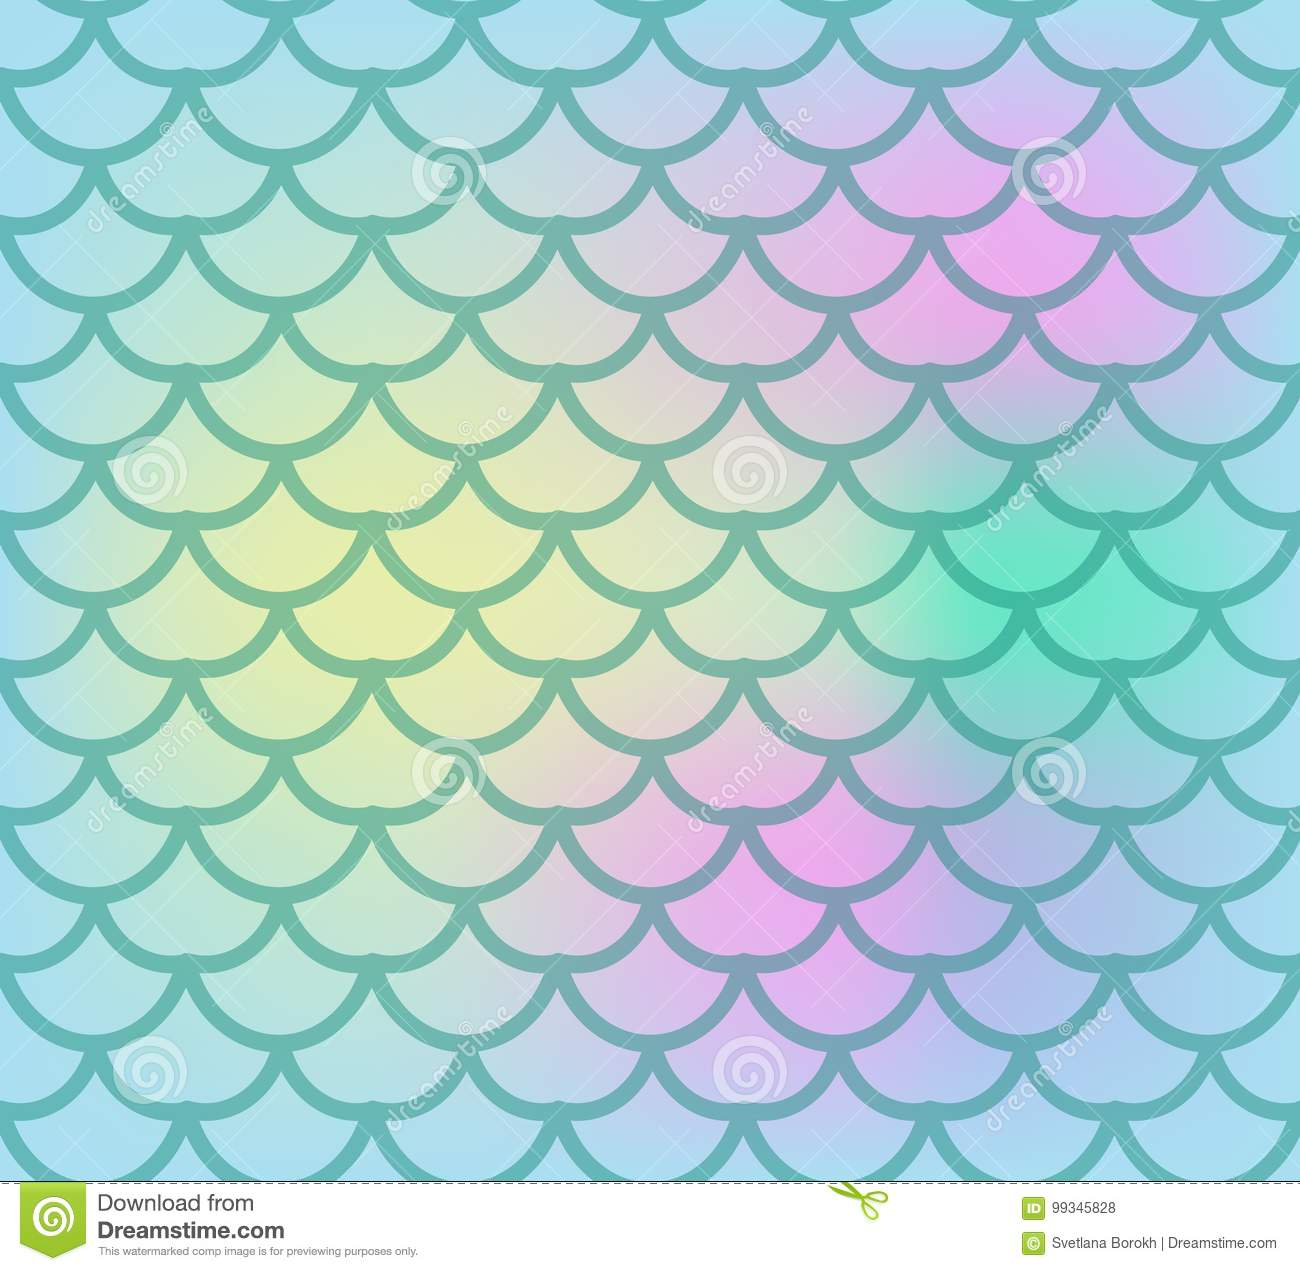 Fish scales seamless pattern. Fish skin endless background, mermaid tail repeating texture. Vector illustration.